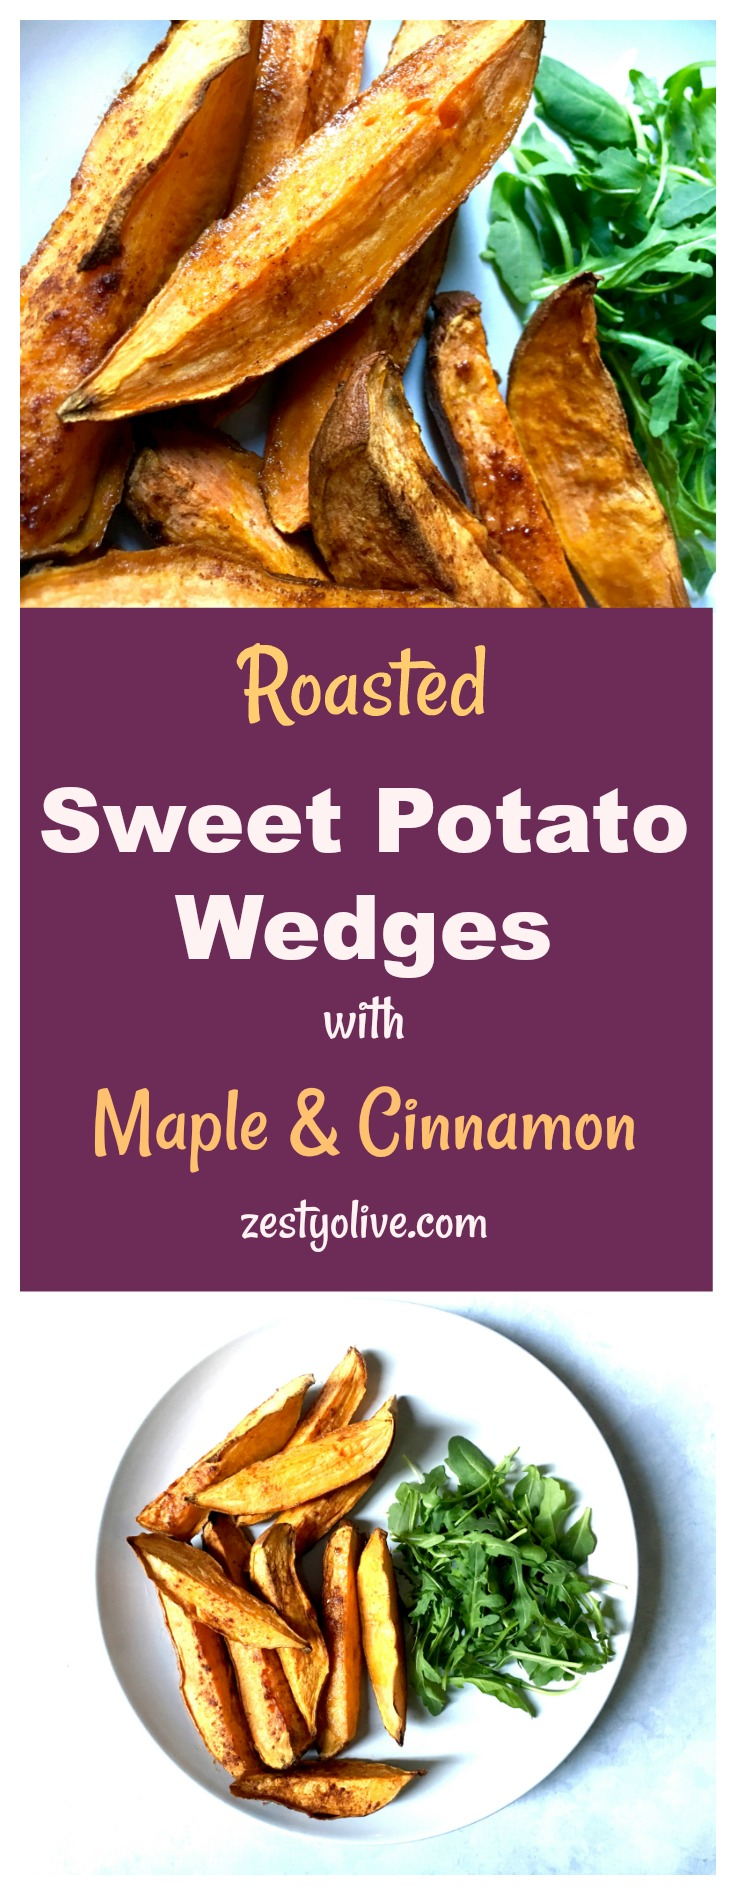 Roasted Sweet Potato Wedges with Maple and Cinnamon